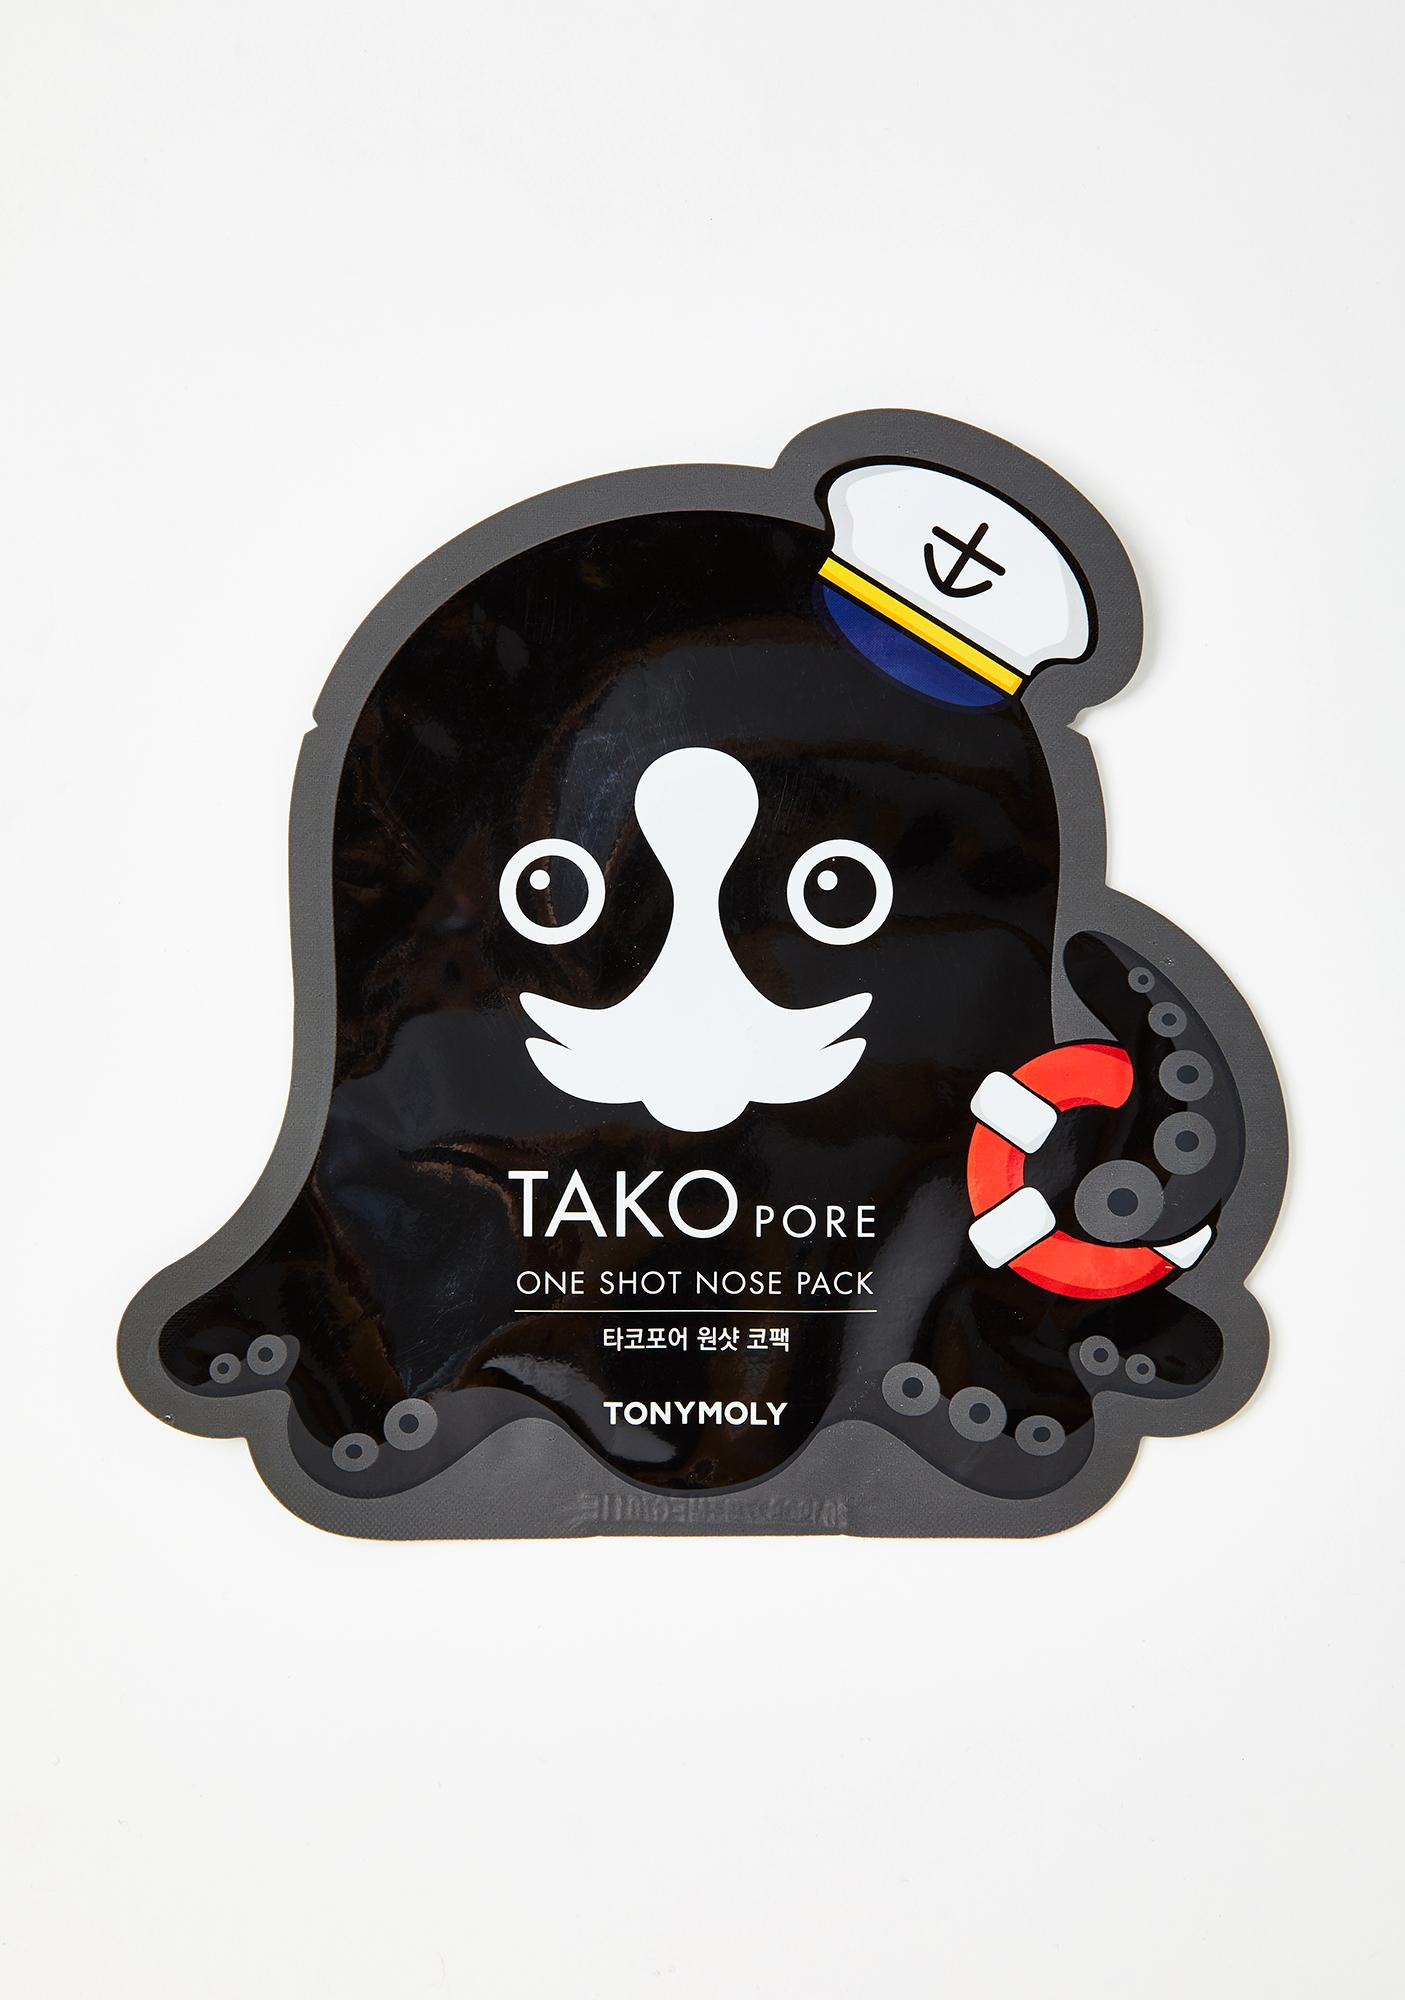 TONYMOLY Tako Pore One Shot Nose Mask